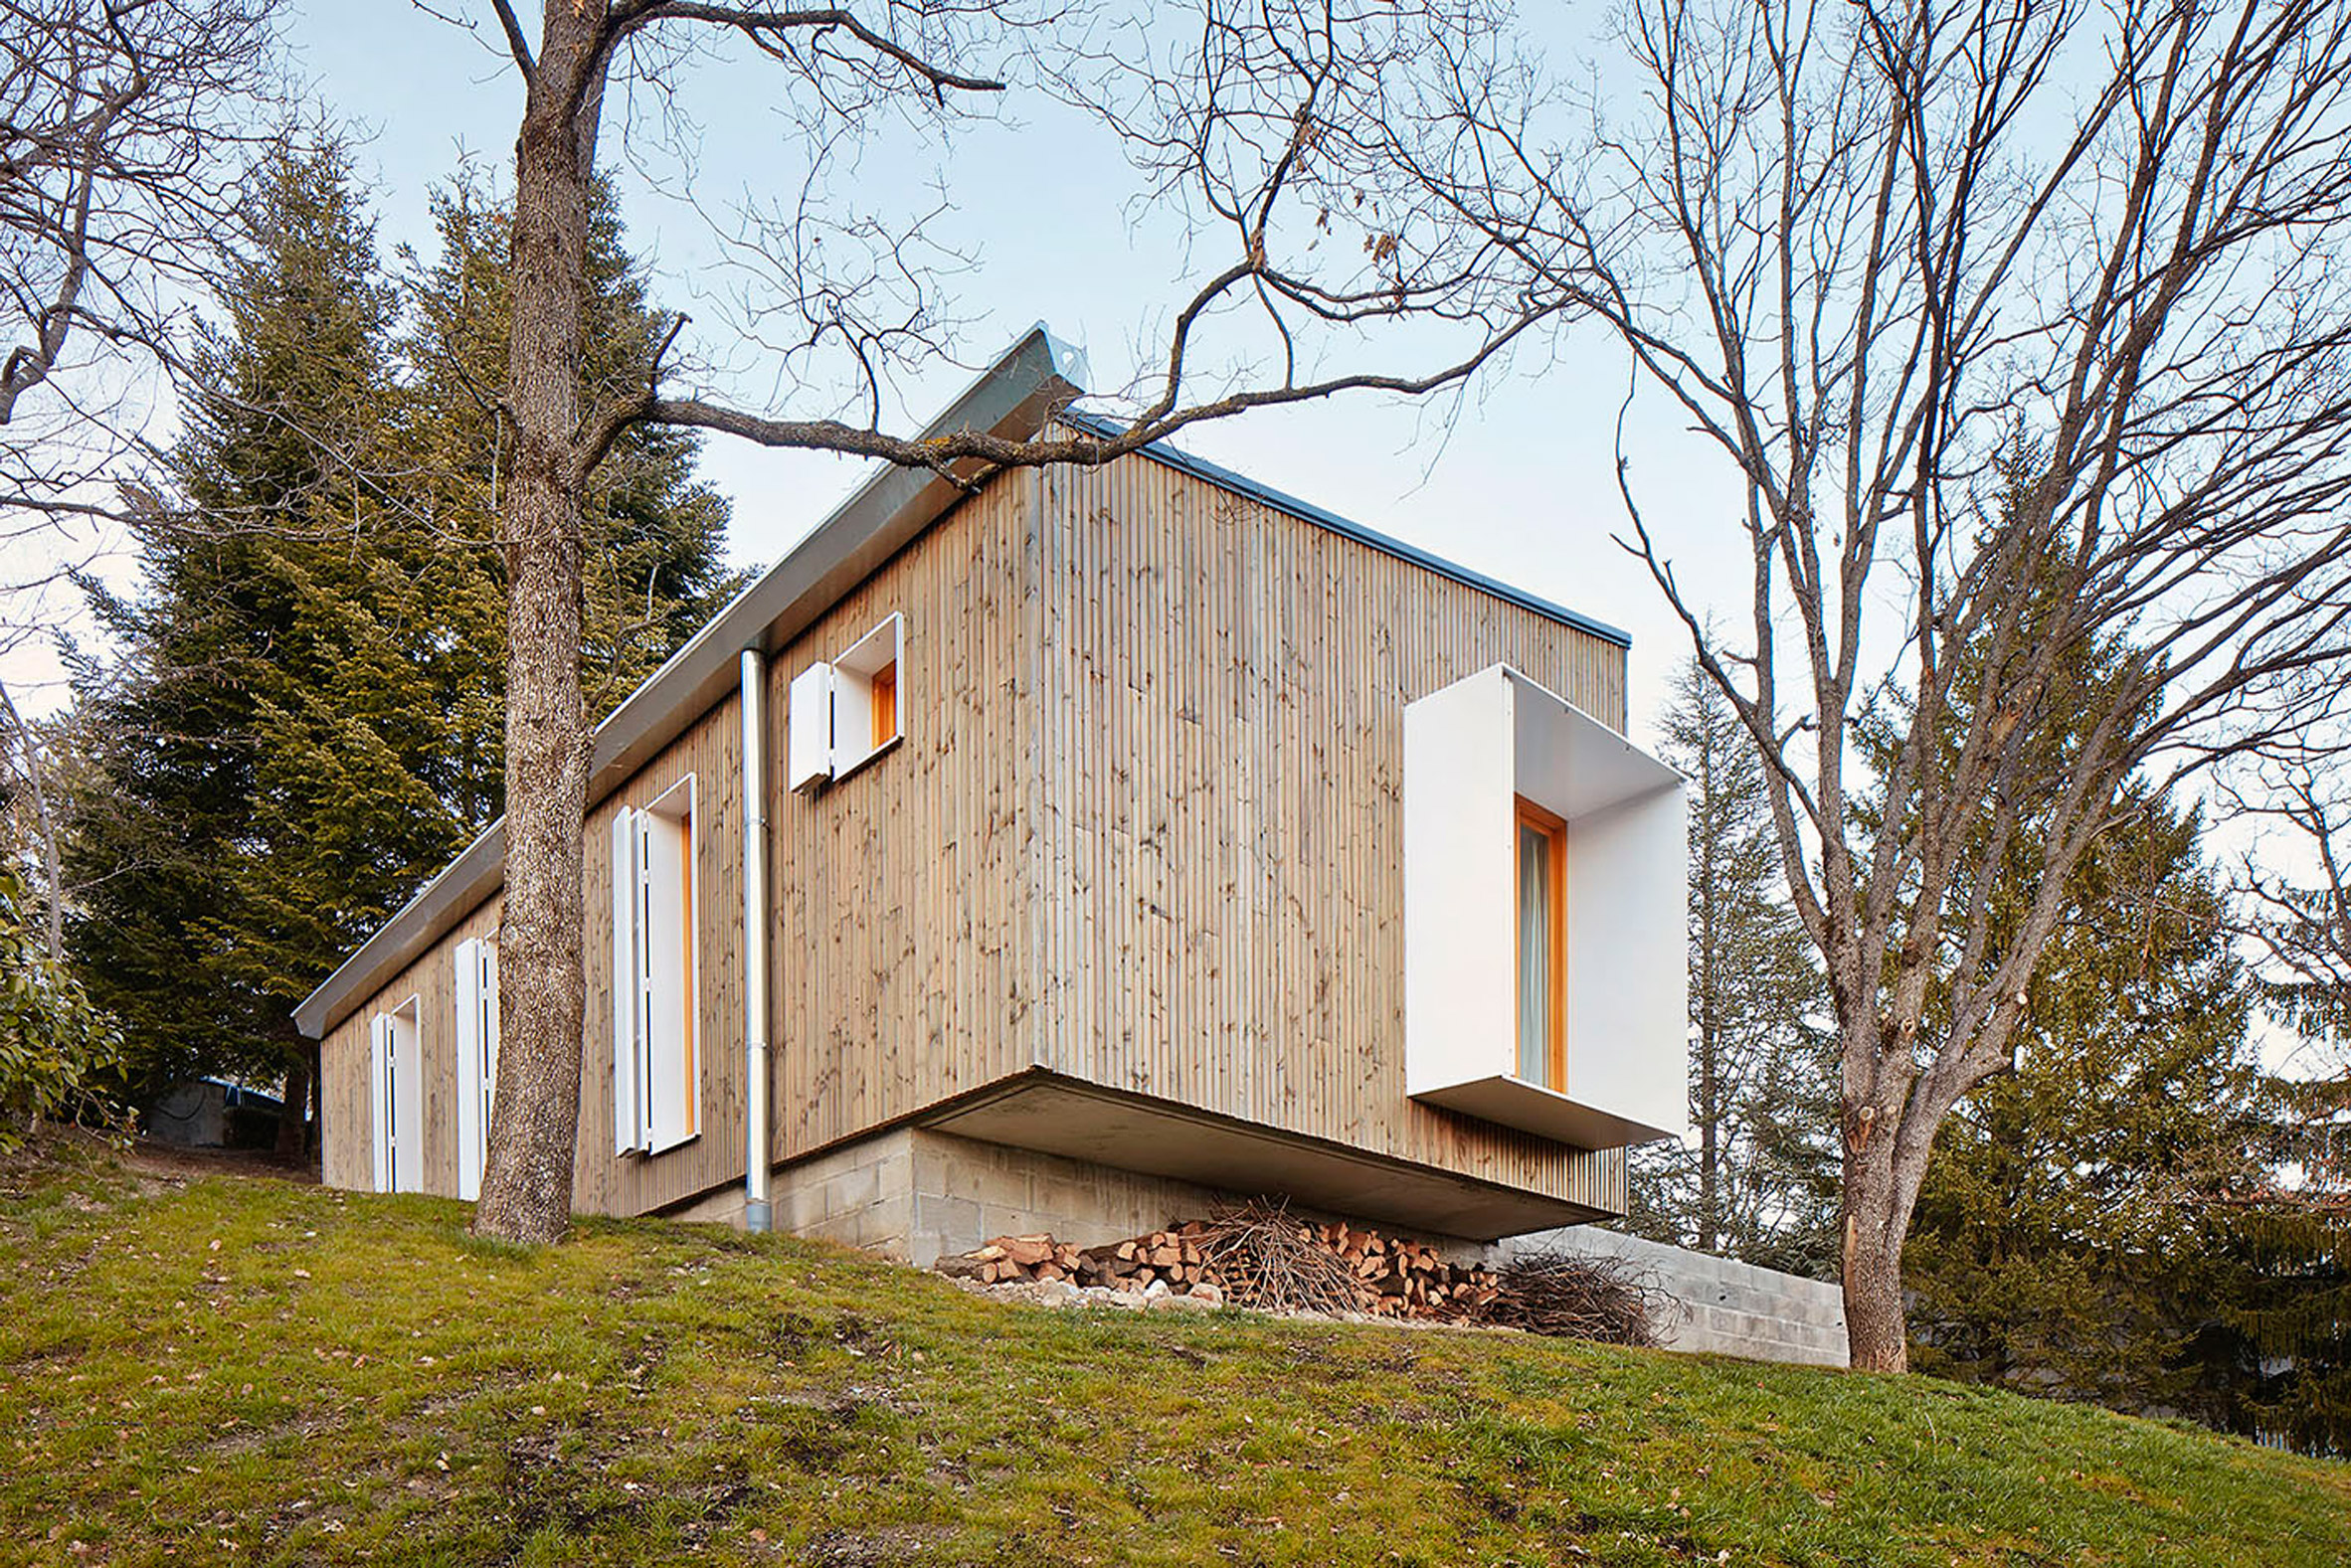 6. Prefababricated wooden home in the Pyrenees by architect Marc Mogas - Prefabricated wooden home in the Pyrenees by architect Marc Mogas